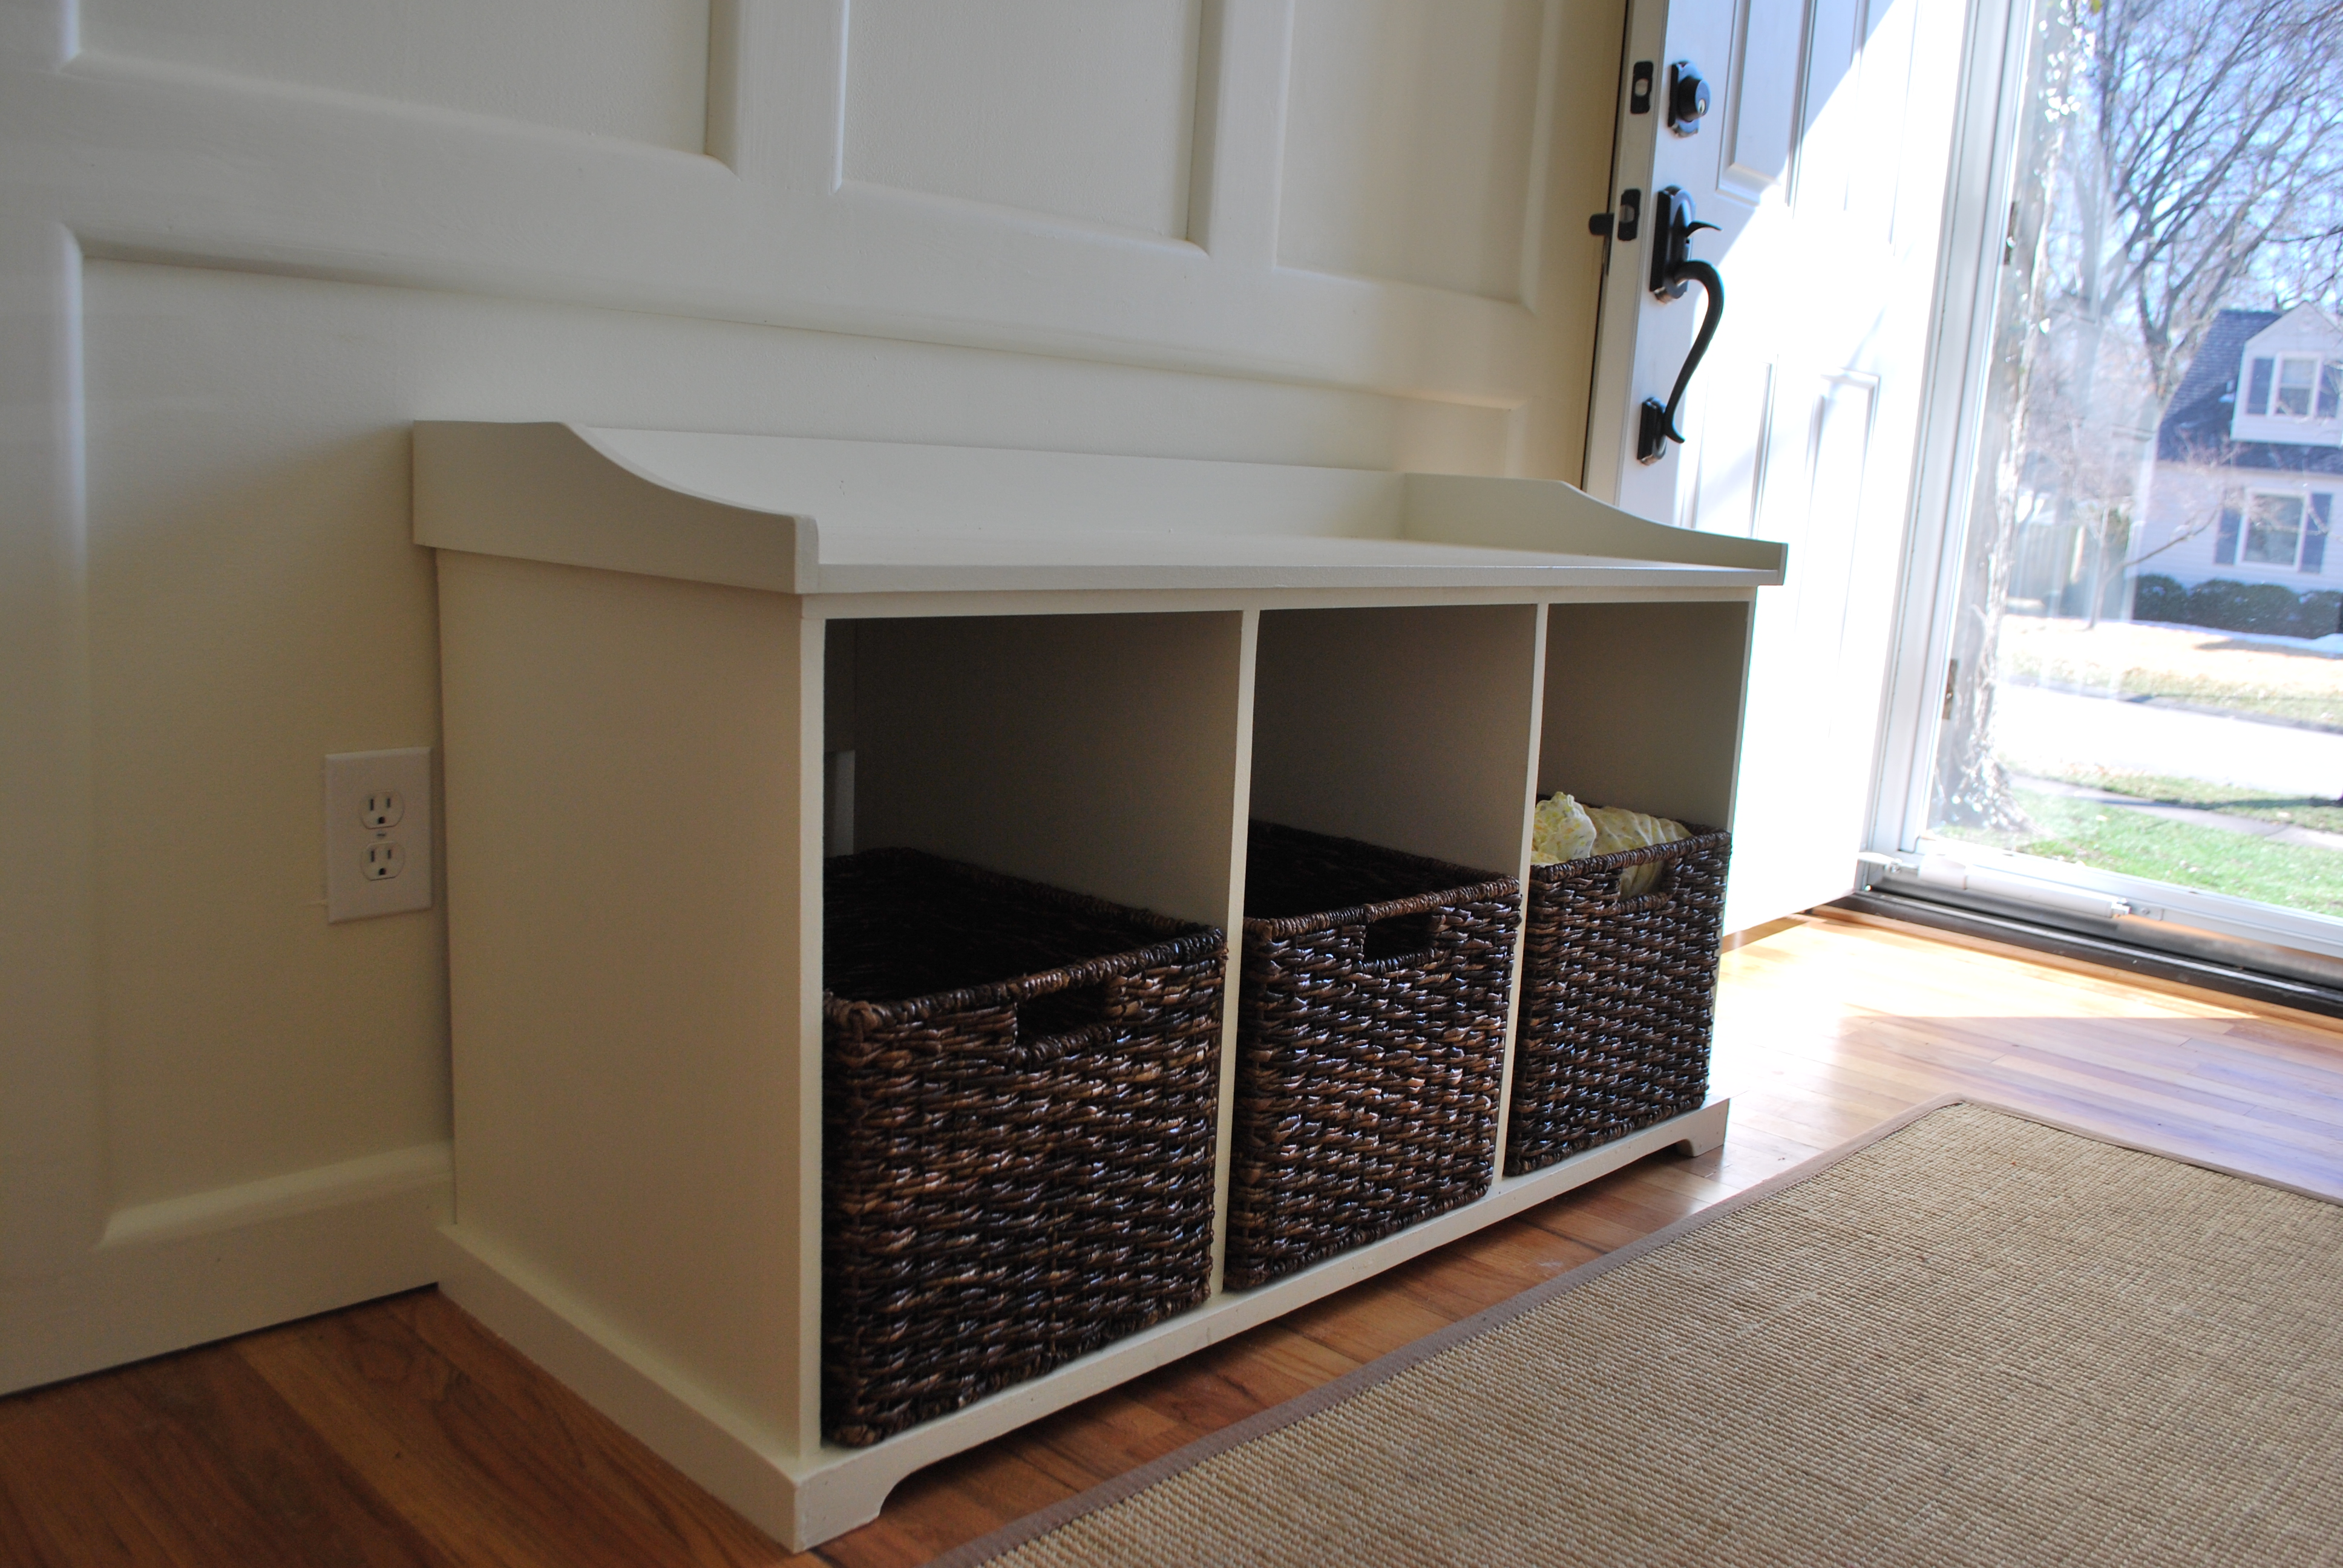 Entryway Storage Bench Diy Plans Free Download Testy39xqi